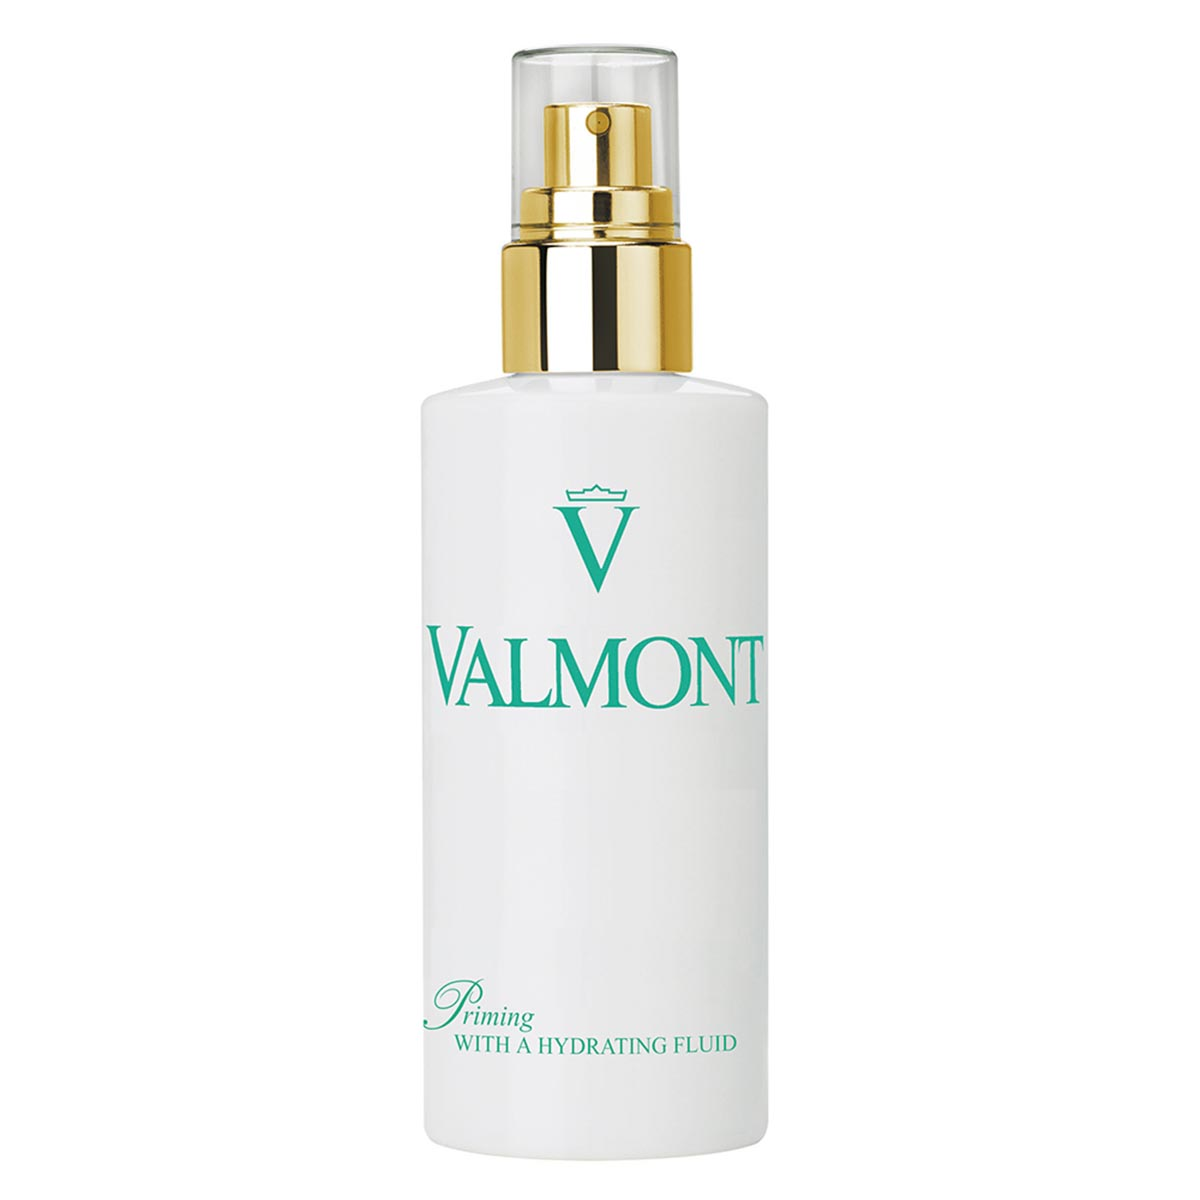 Valmont hydration priming fluid 150ml